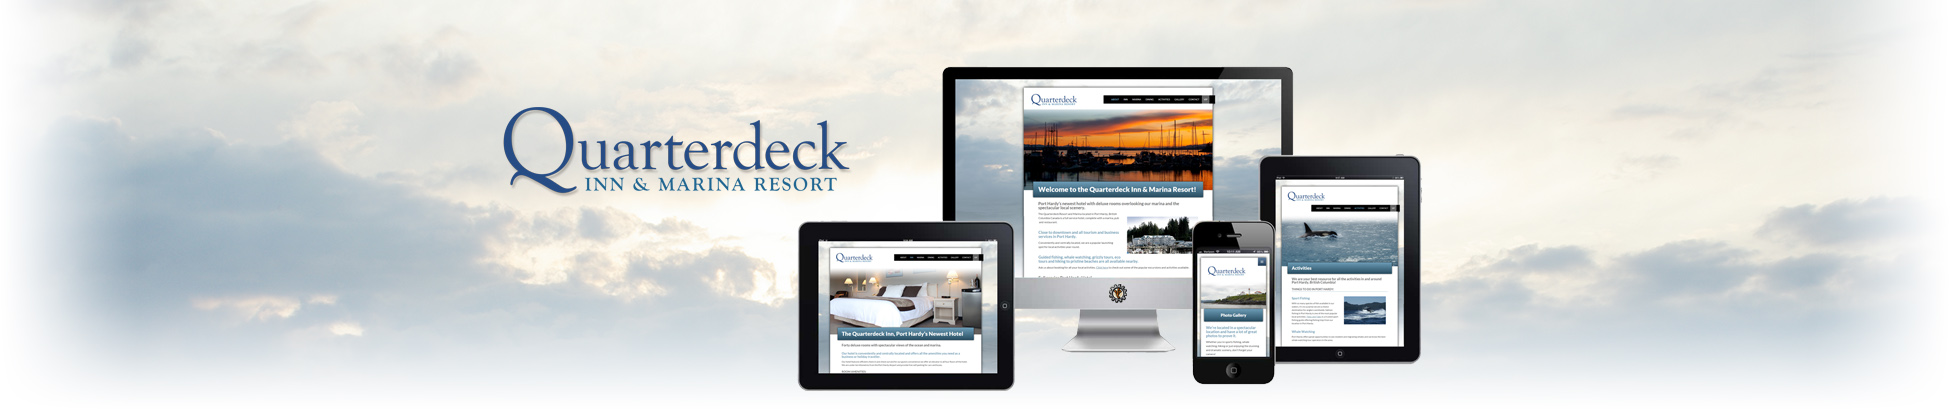 Website design for the Quarterdeck Resort